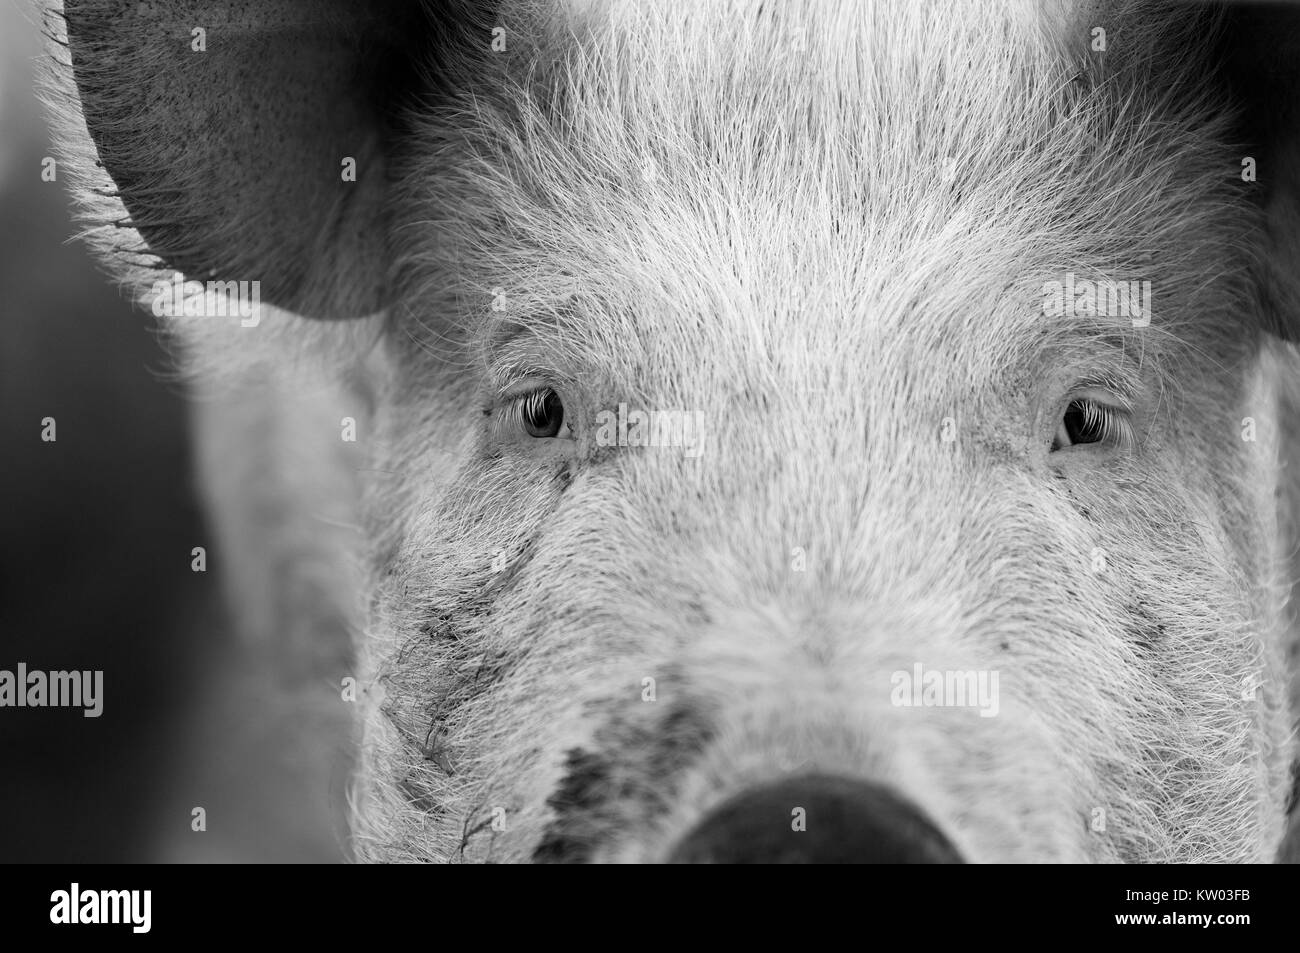 Portrait of a pig's face. - Stock Image